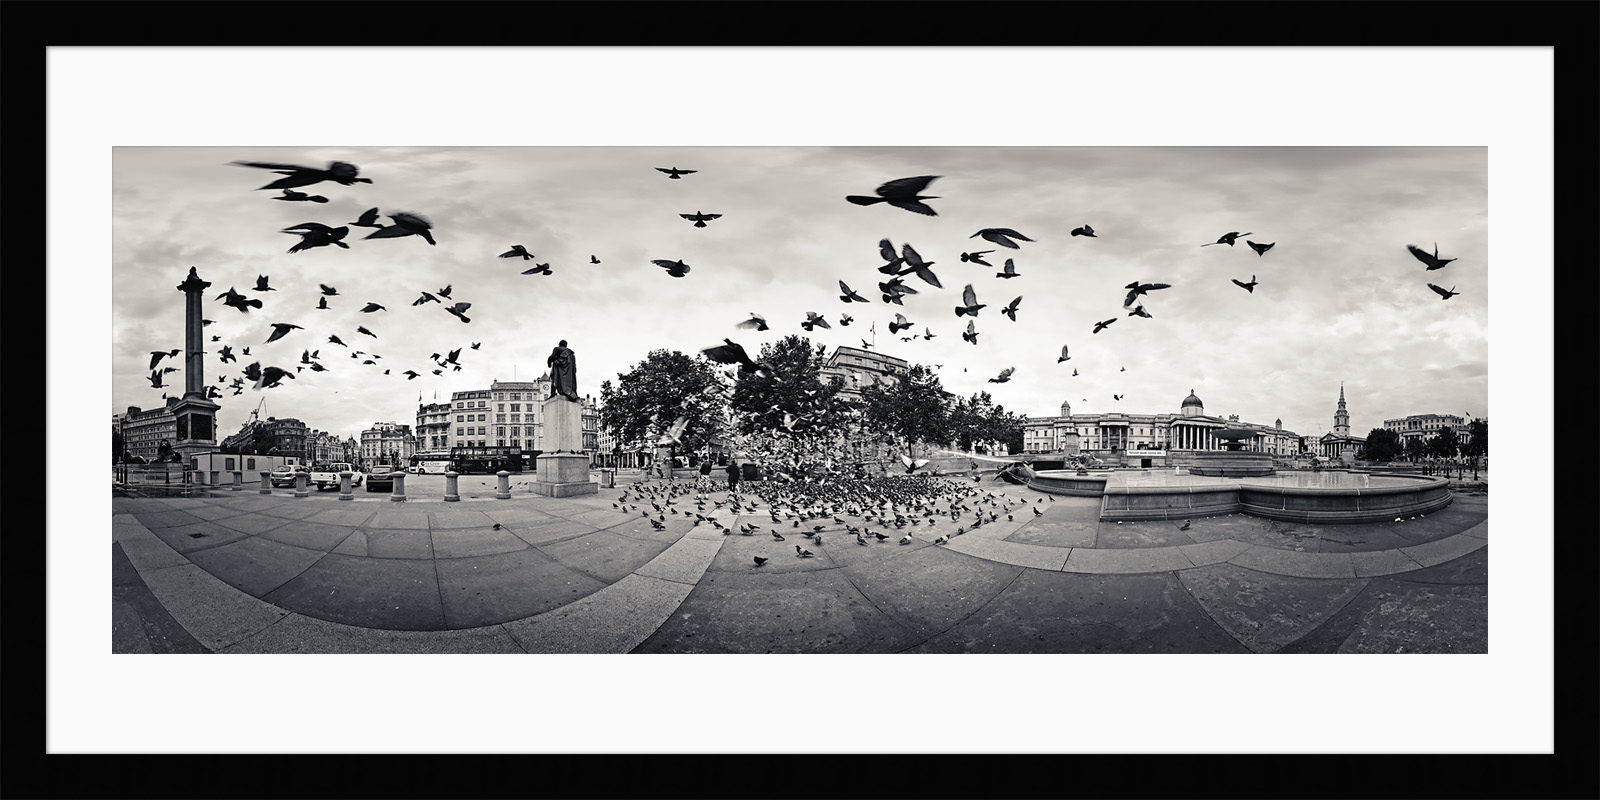 The Birds - Framed London Black & White Fine Art Photograph